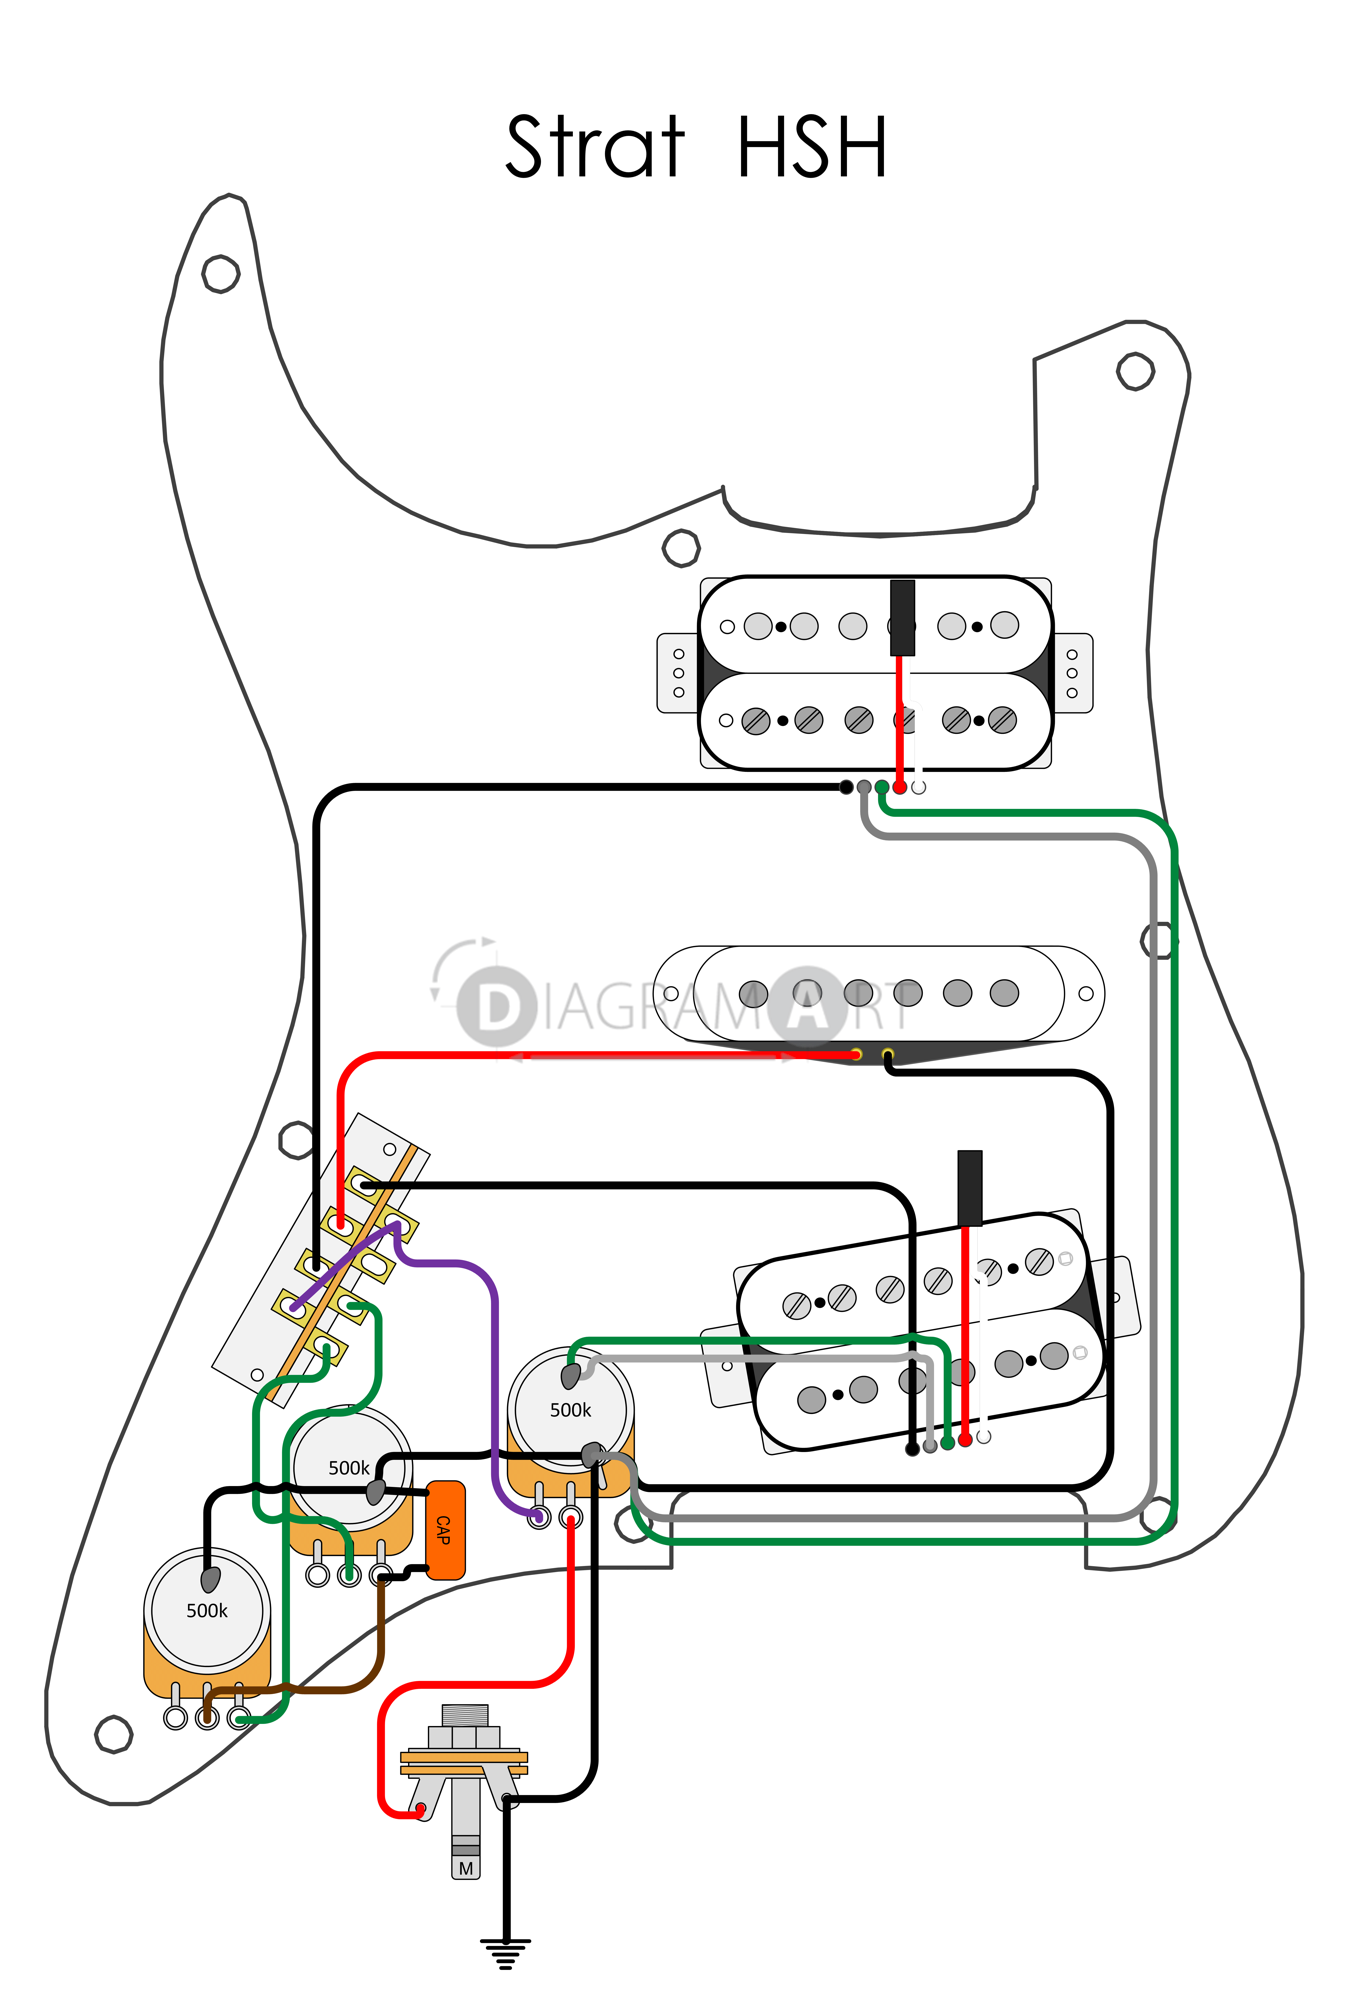 electric guitar wiring strat hsh electric circuit diagramart rh diagramart com wiring electric guitar pickups electric guitar wiring kit